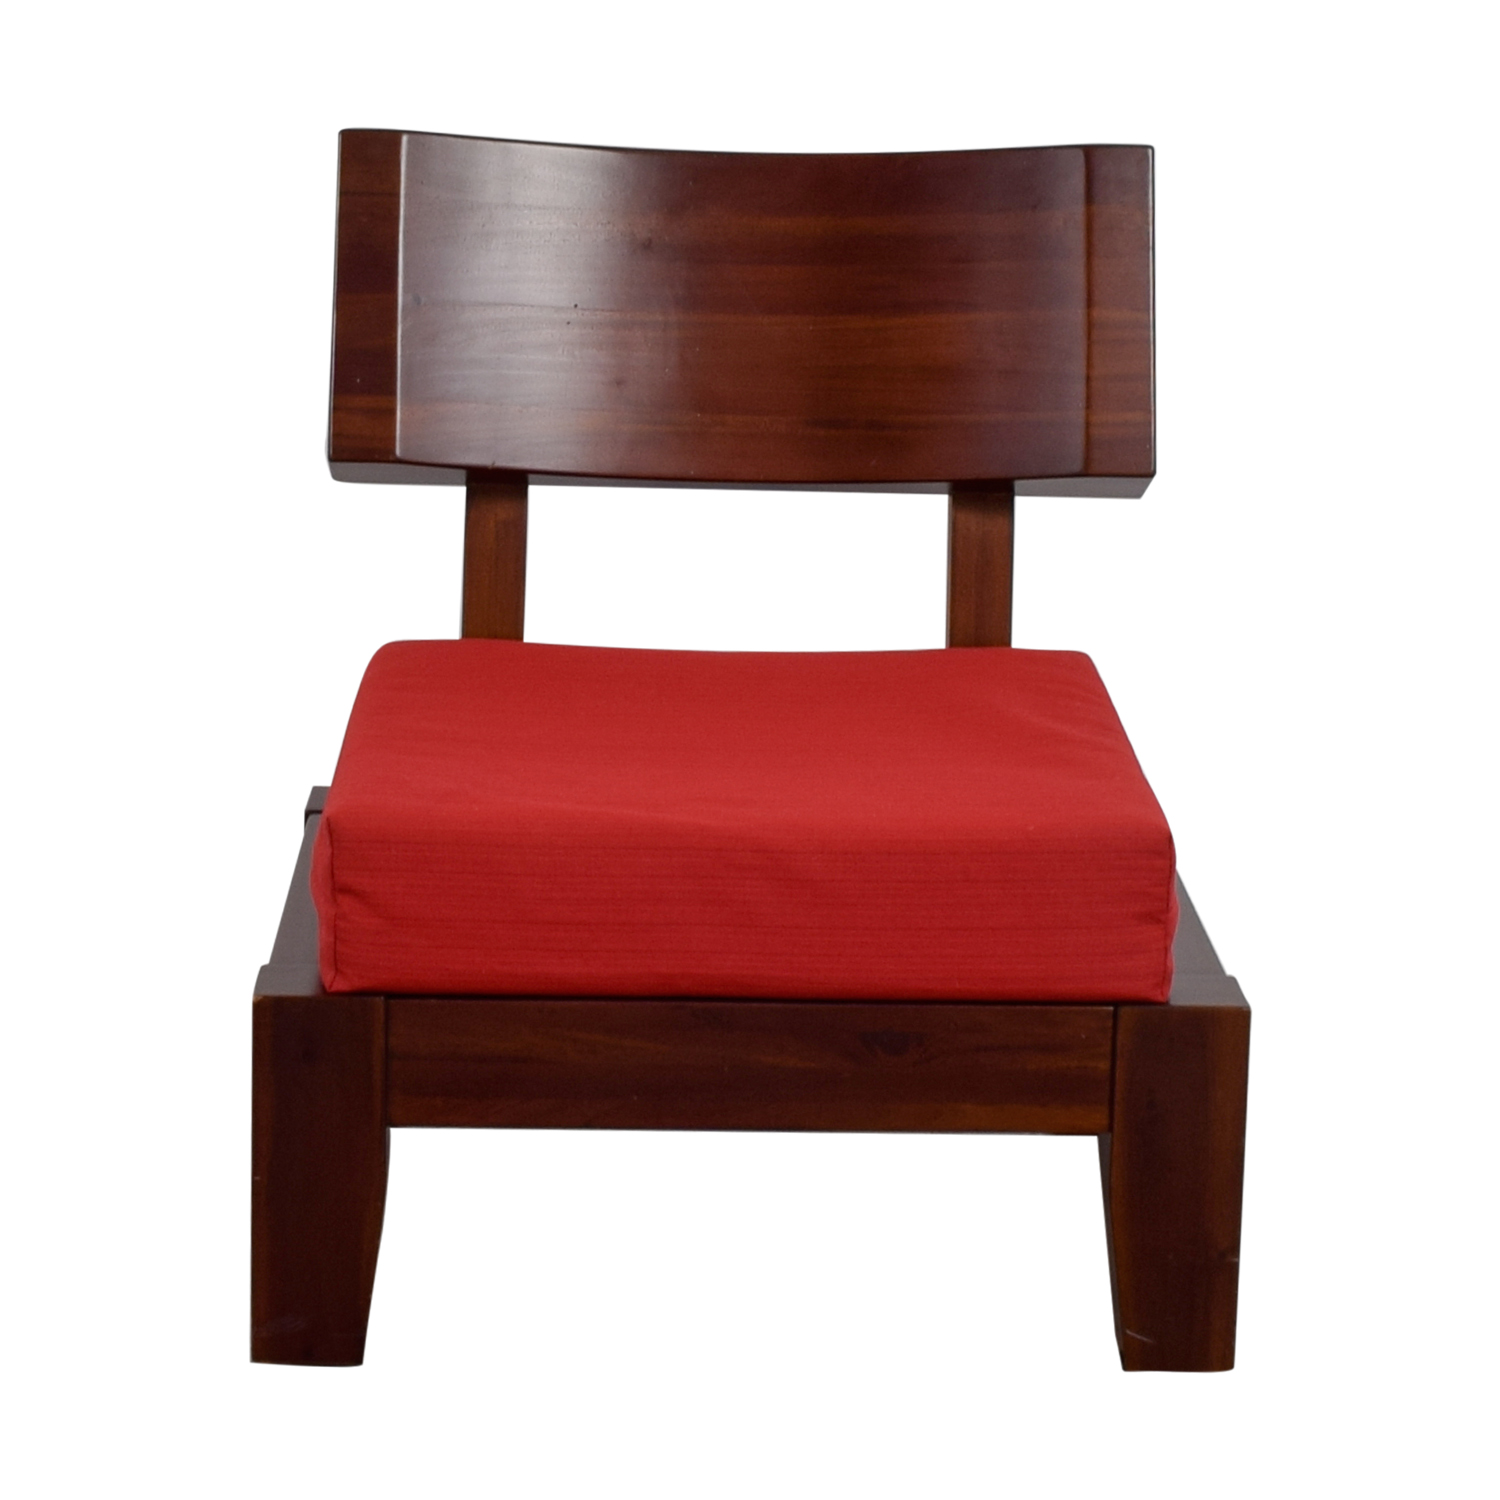 Haverty Haverty Red Wood Sleeper Chair dimensions